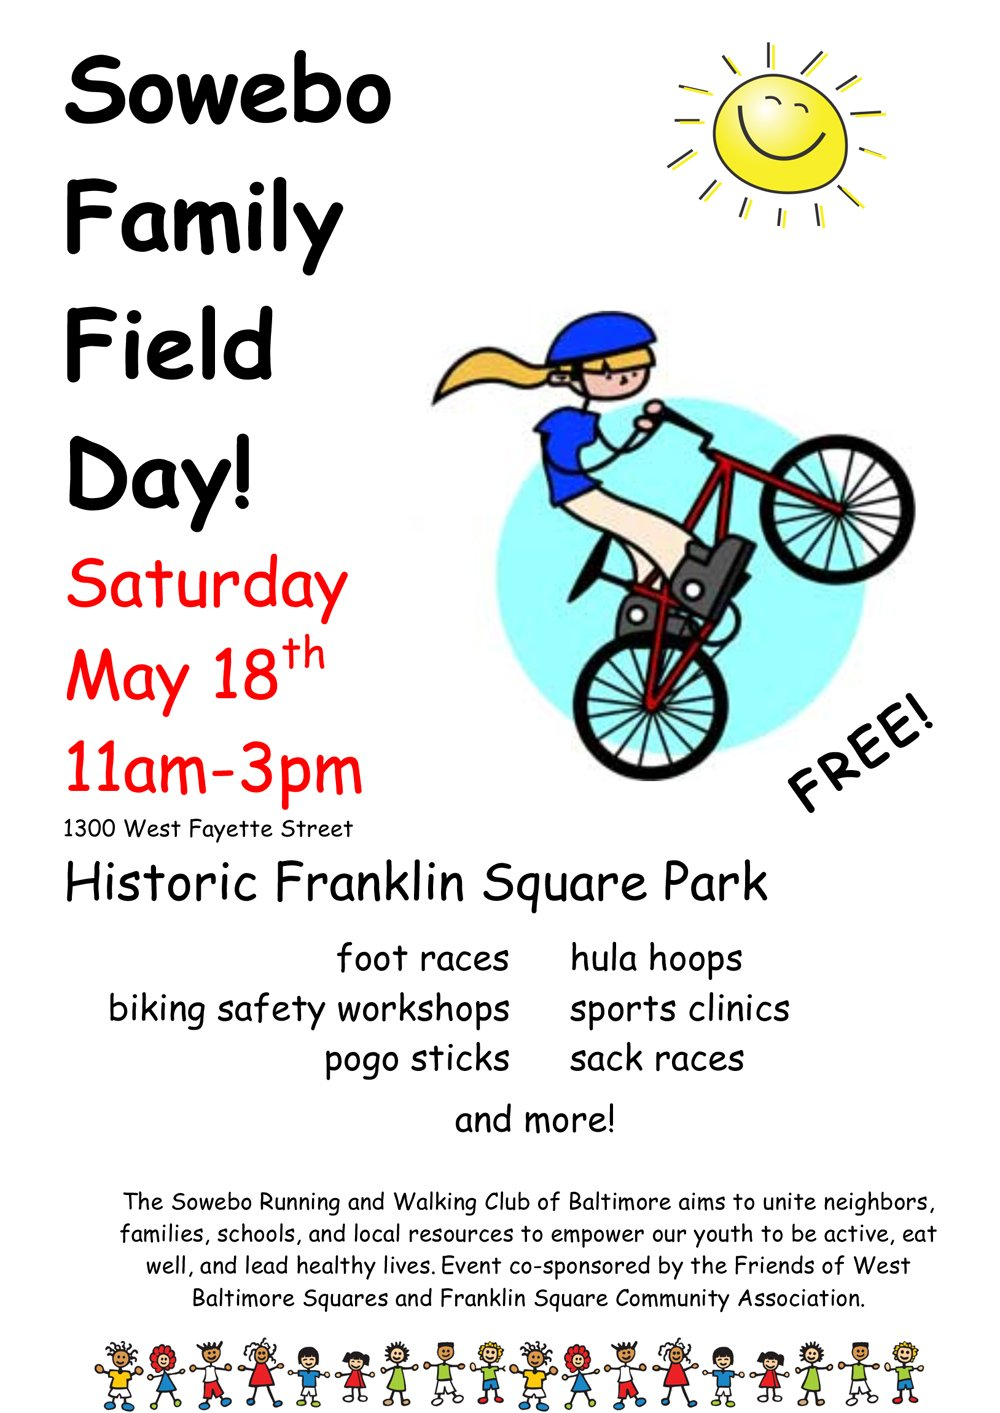 microsoft word sowebo family field day flyer docx about the author kevin lynch